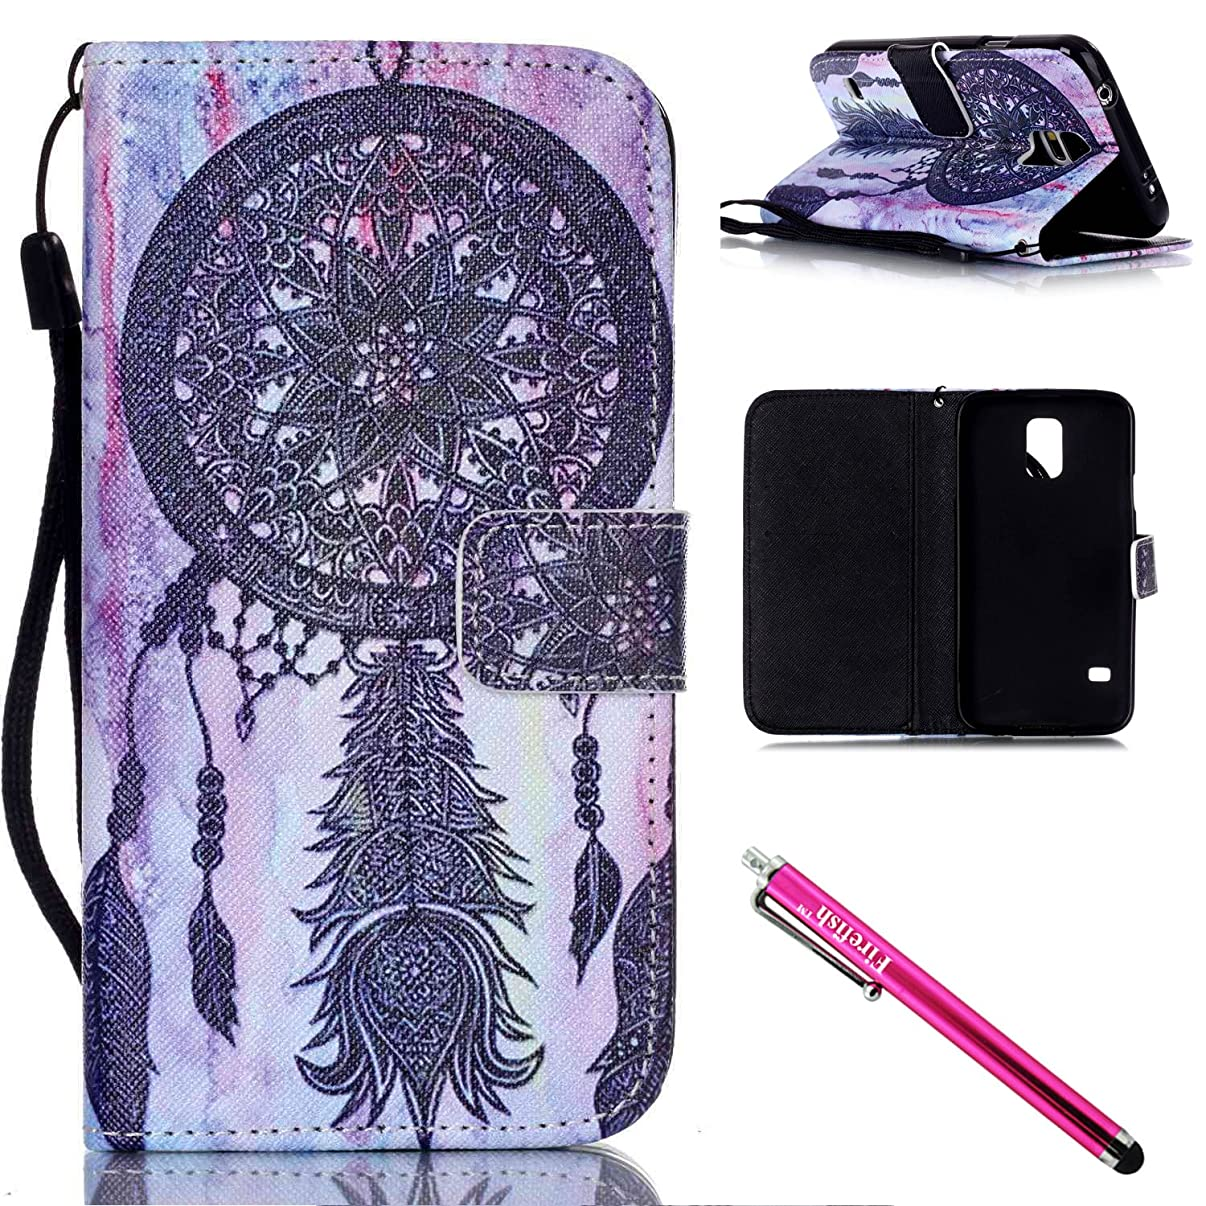 Galaxy S5 mini Case, Firefish [Kickstand] PU Leather Flip Purse Case Slim Bumper Cover with Lanyard Magnetic Skin for Samsung Galaxy S5 mini (SM-G800) + including One Stylus-Blacknet